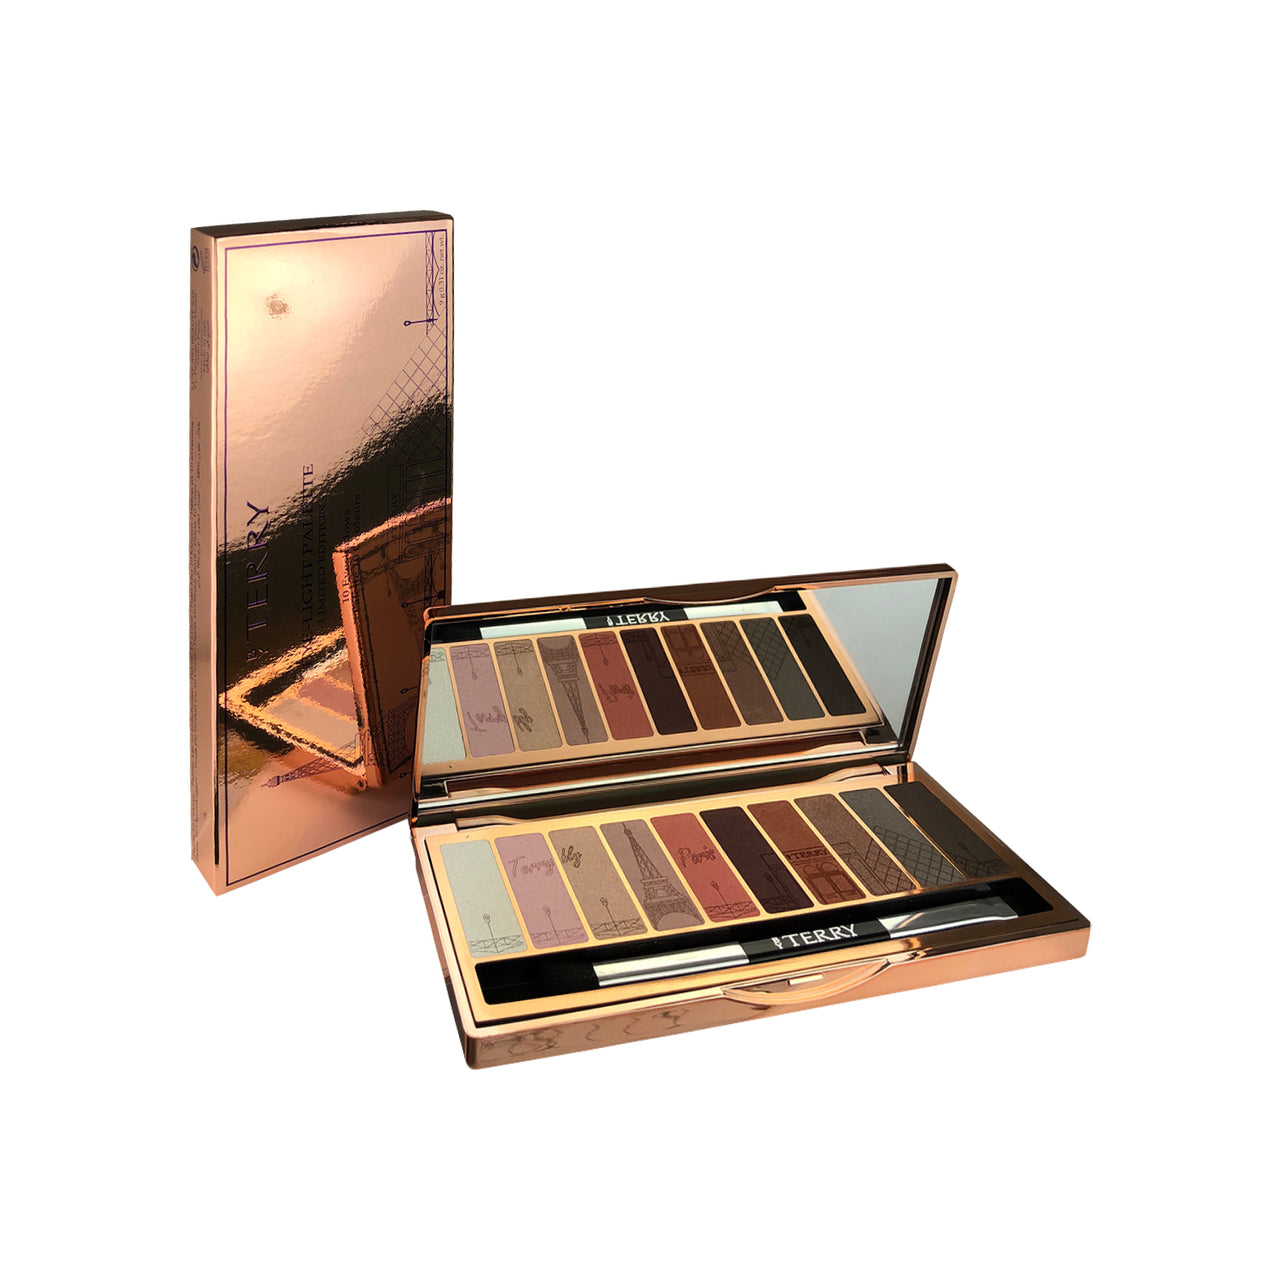 Paris Eye Light Makeup Eye Shadow Palette Set with 10 colors by Terry